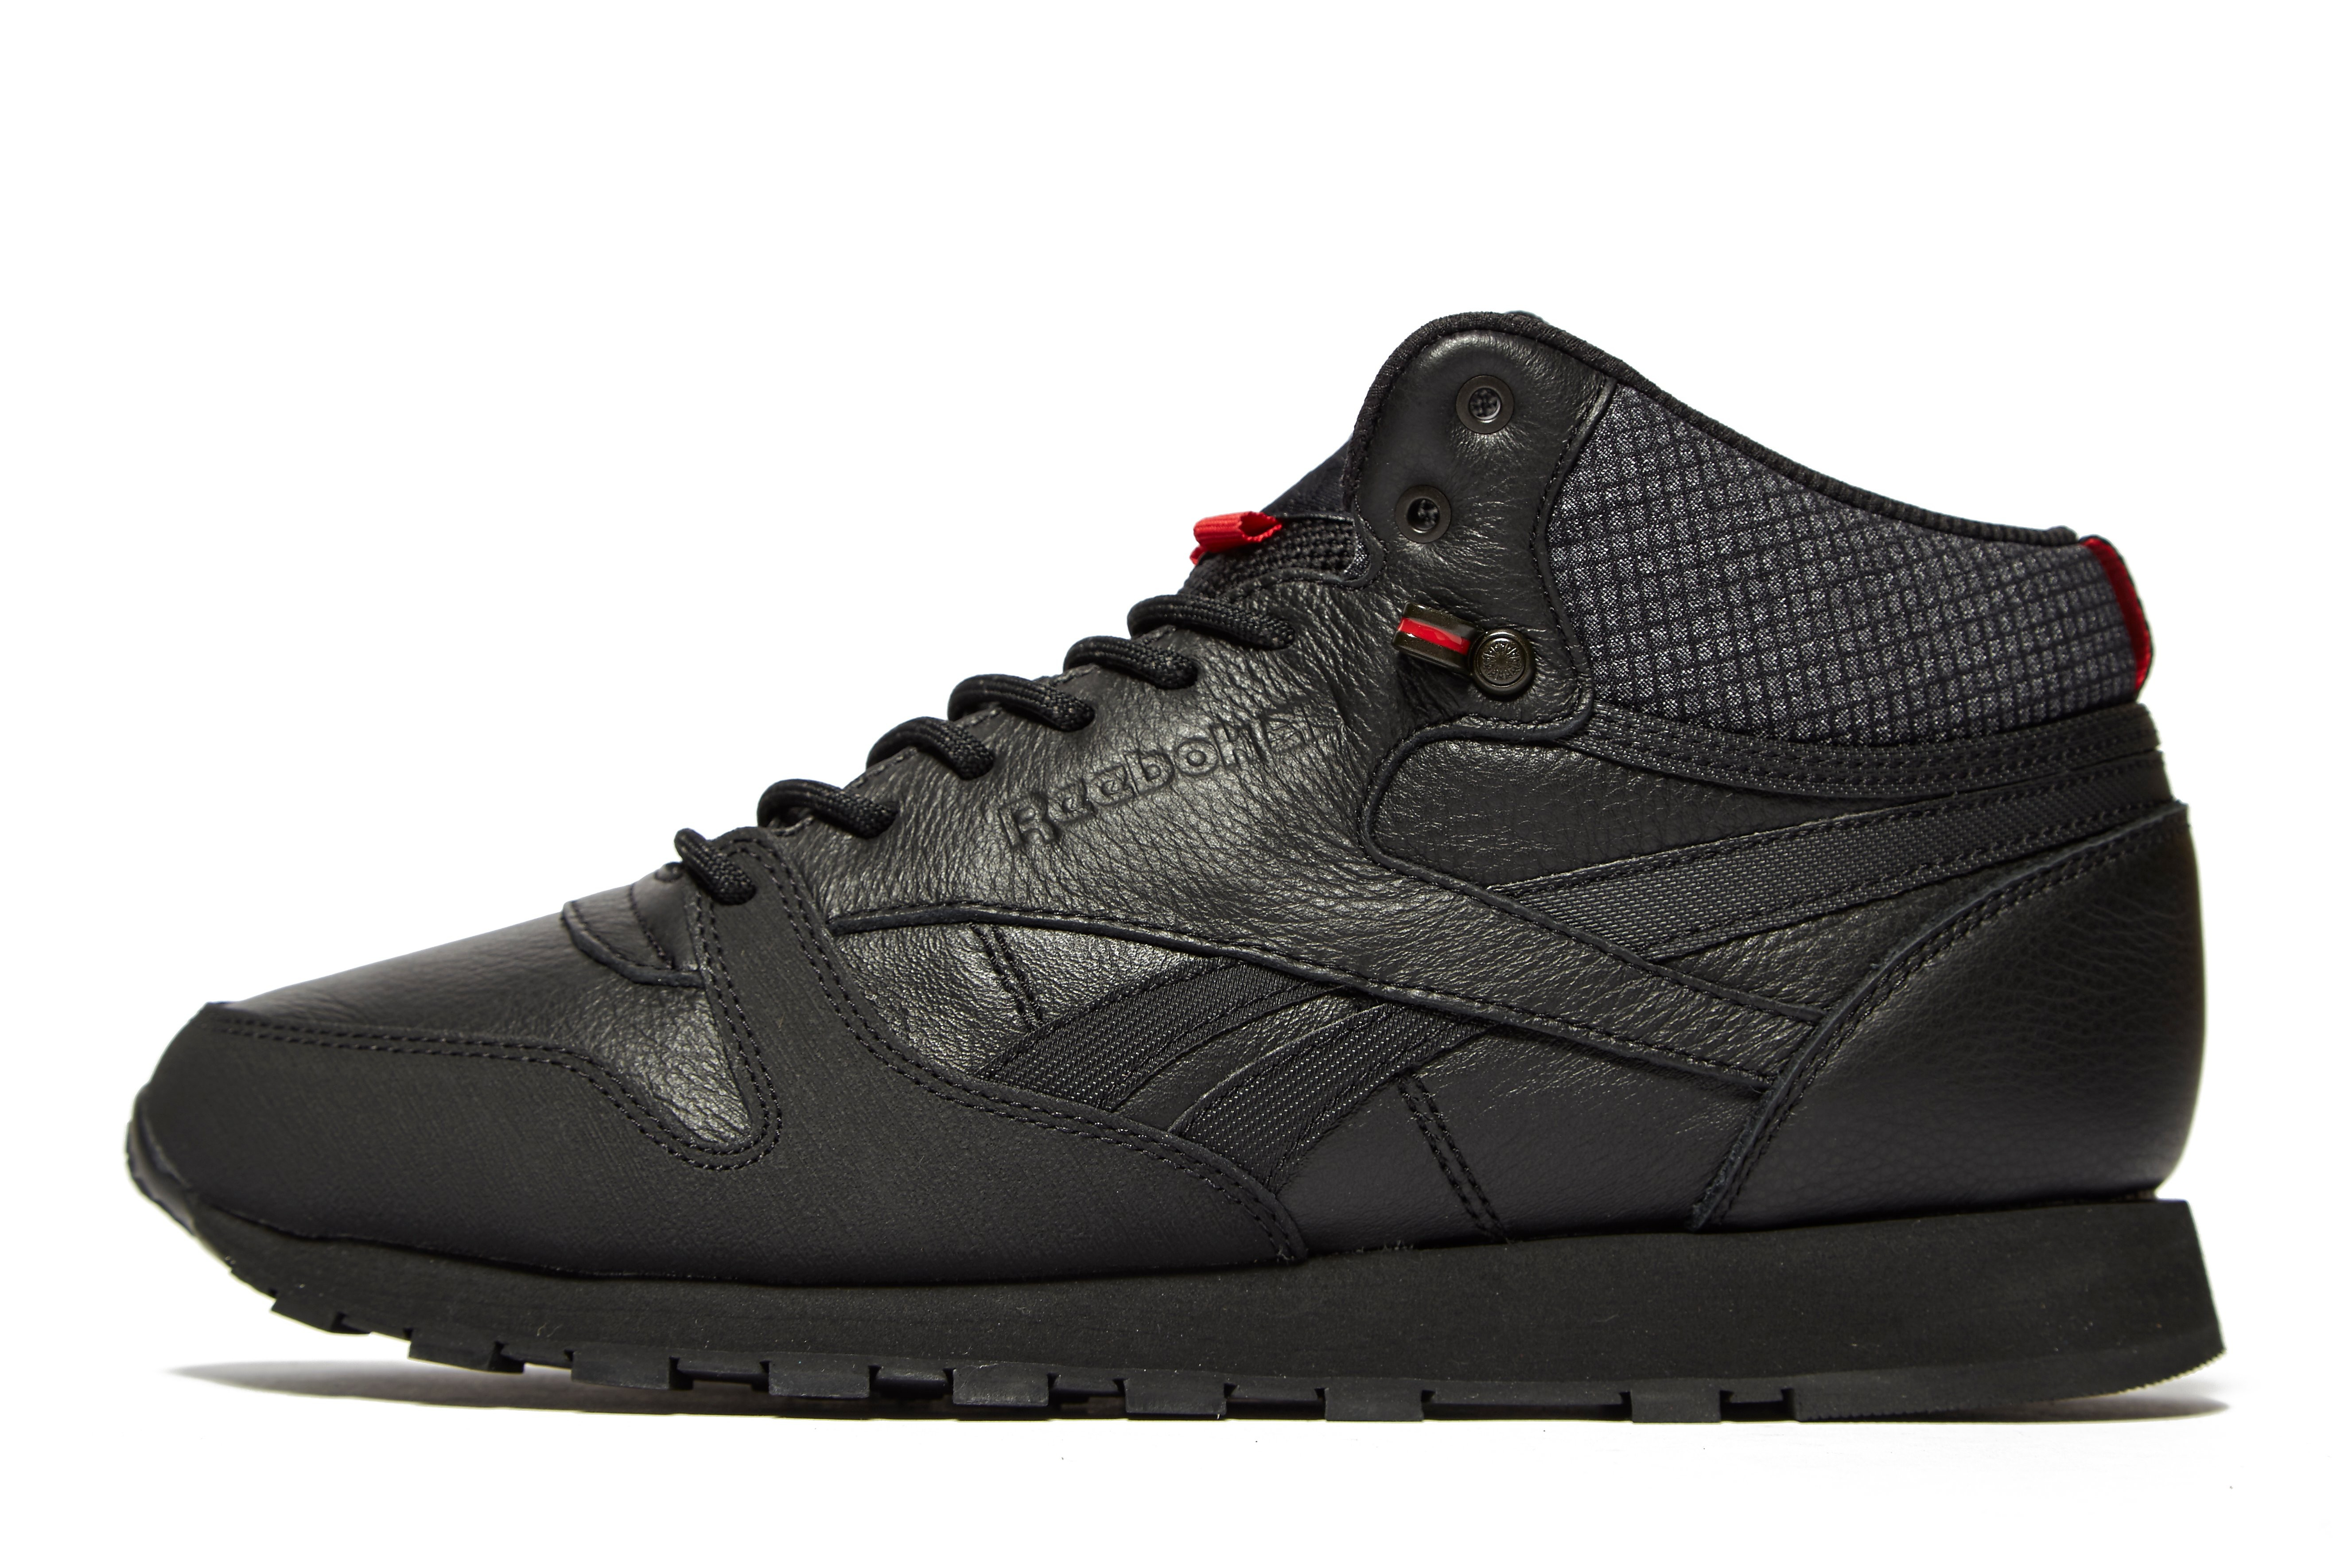 Reebok Classic Leather Mid